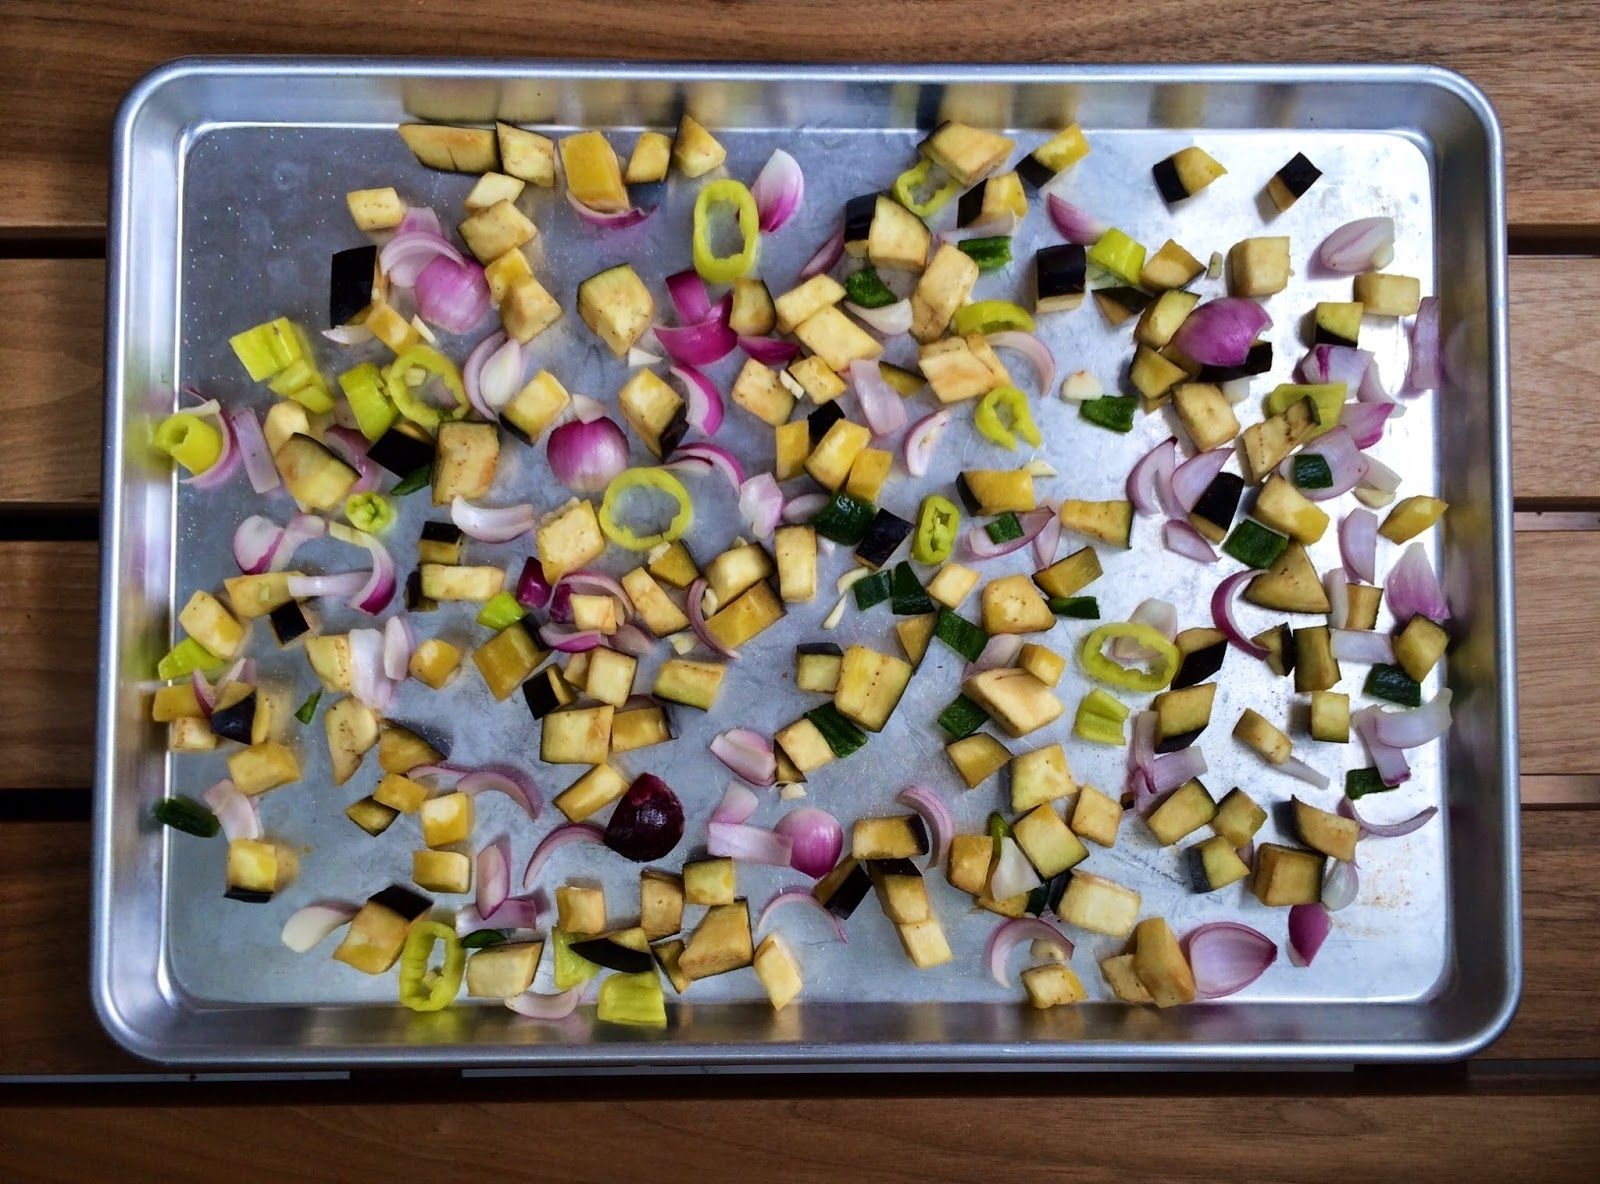 Roasted Eggplant Spread Recipe: A healthy appetizer